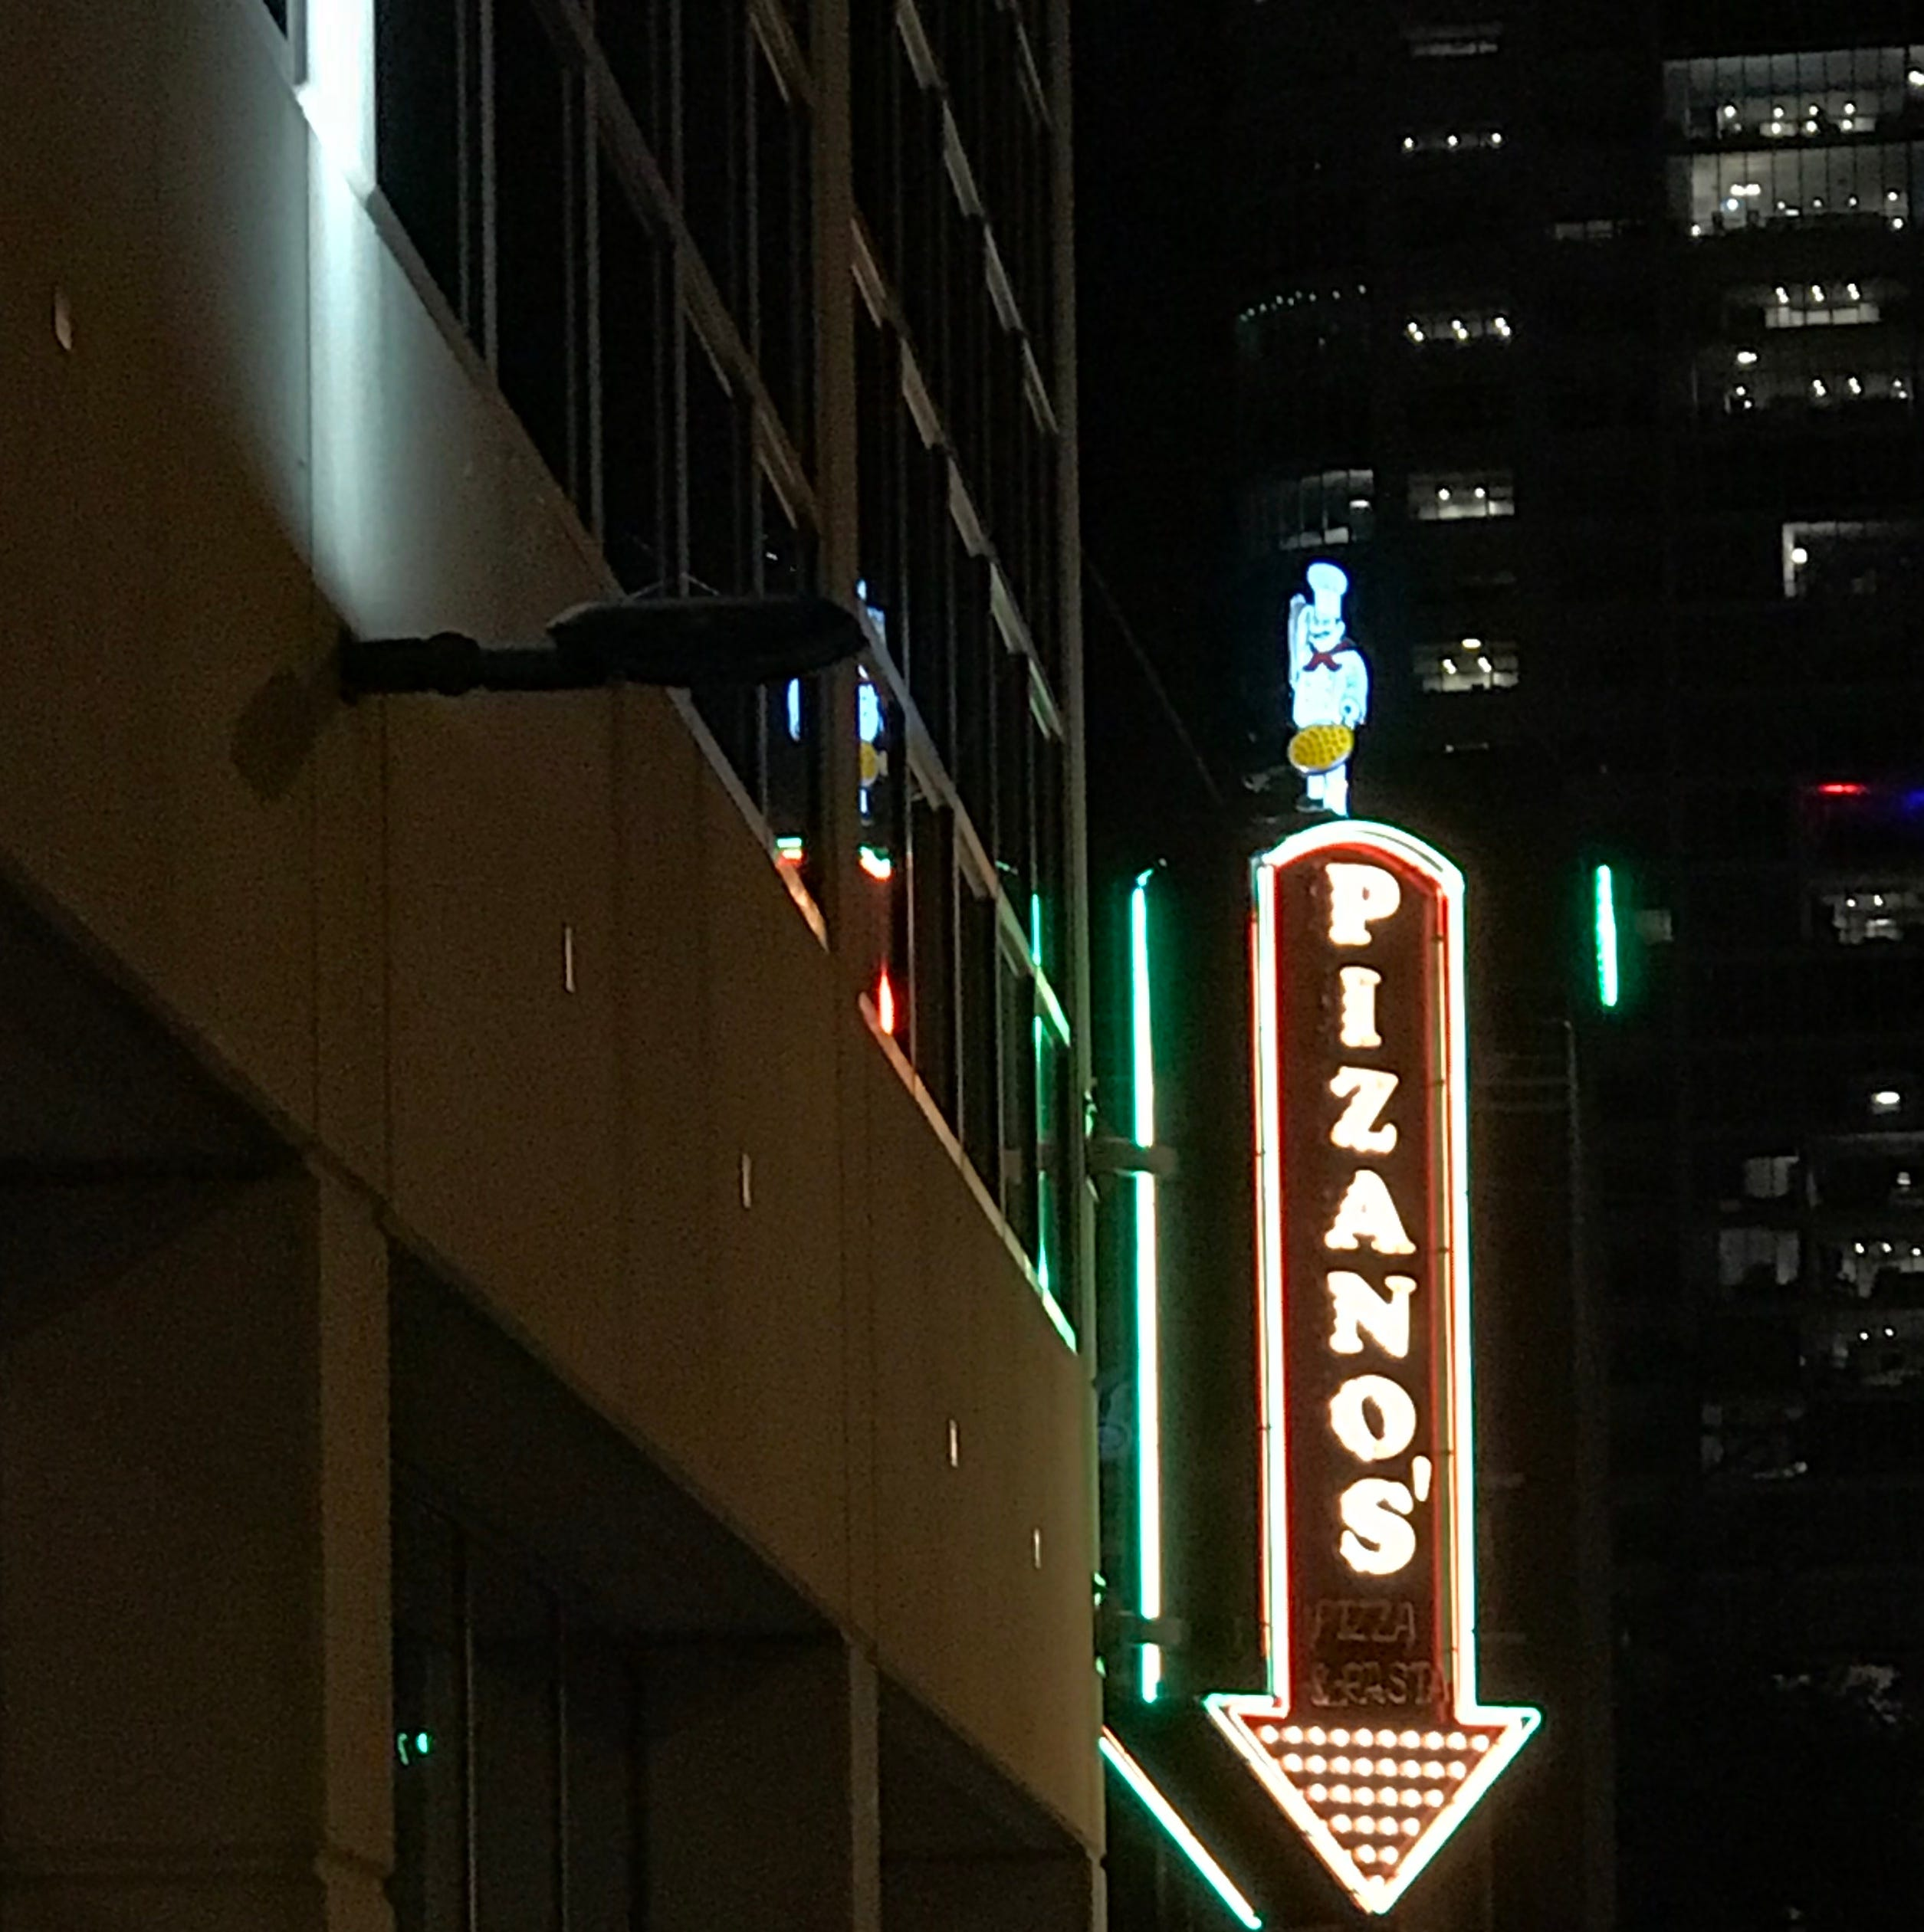 Pizano's Pizza and Pasta is opening downtown for dinner